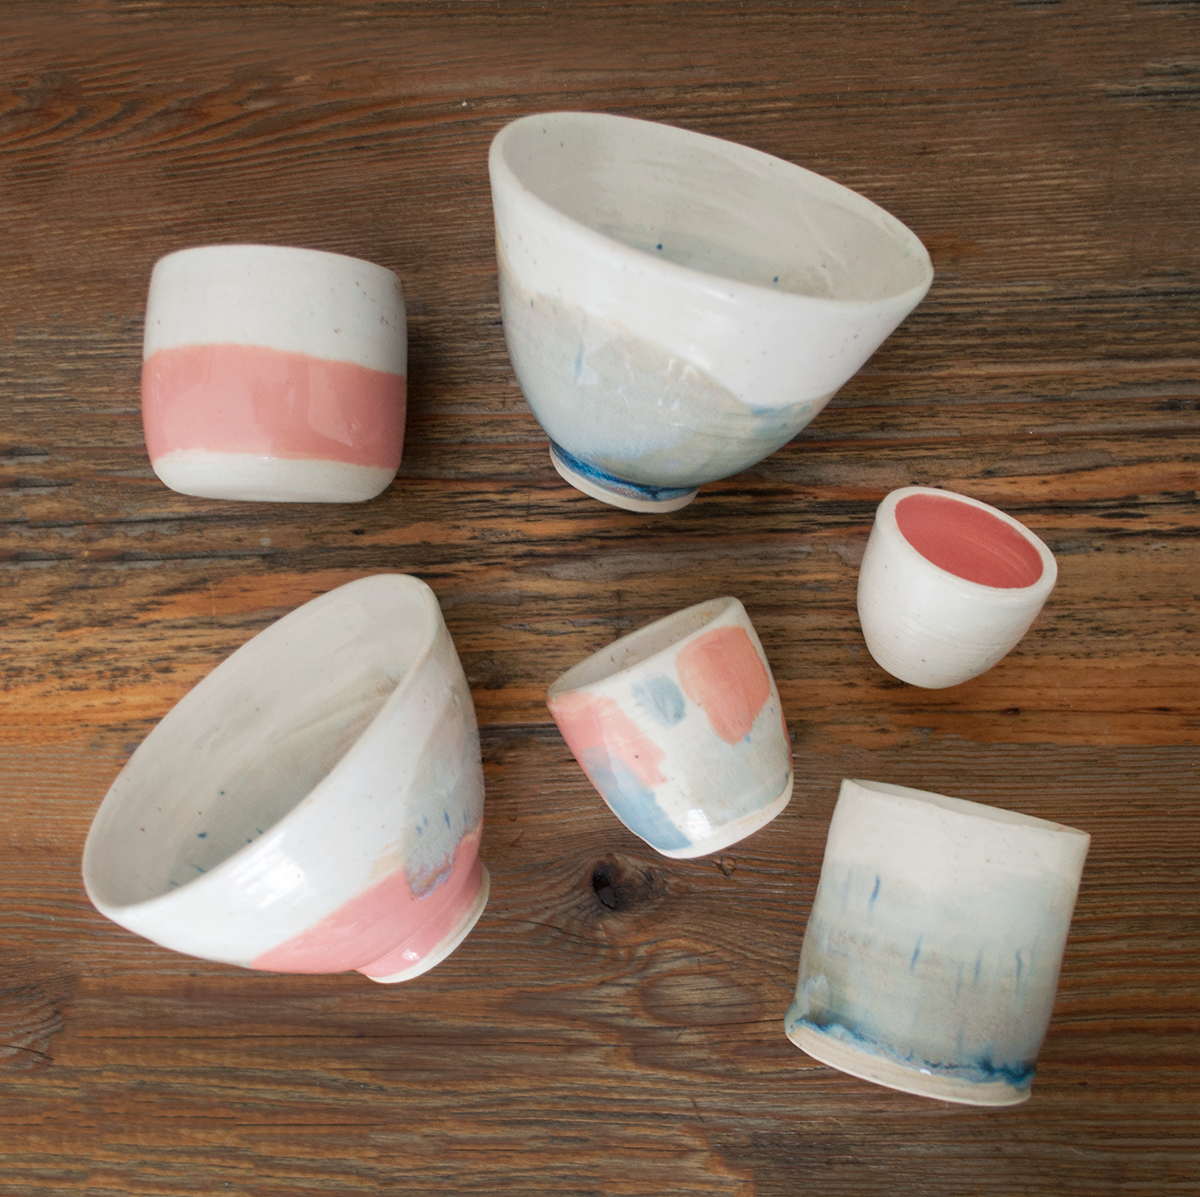 After a year of not doing ceramics, my partner and I threw these pieces all in one afternoon. The bowls were inspired by our trip in Iceland with the rolling mountains and a hidden lake inside the bottom of each bowl.